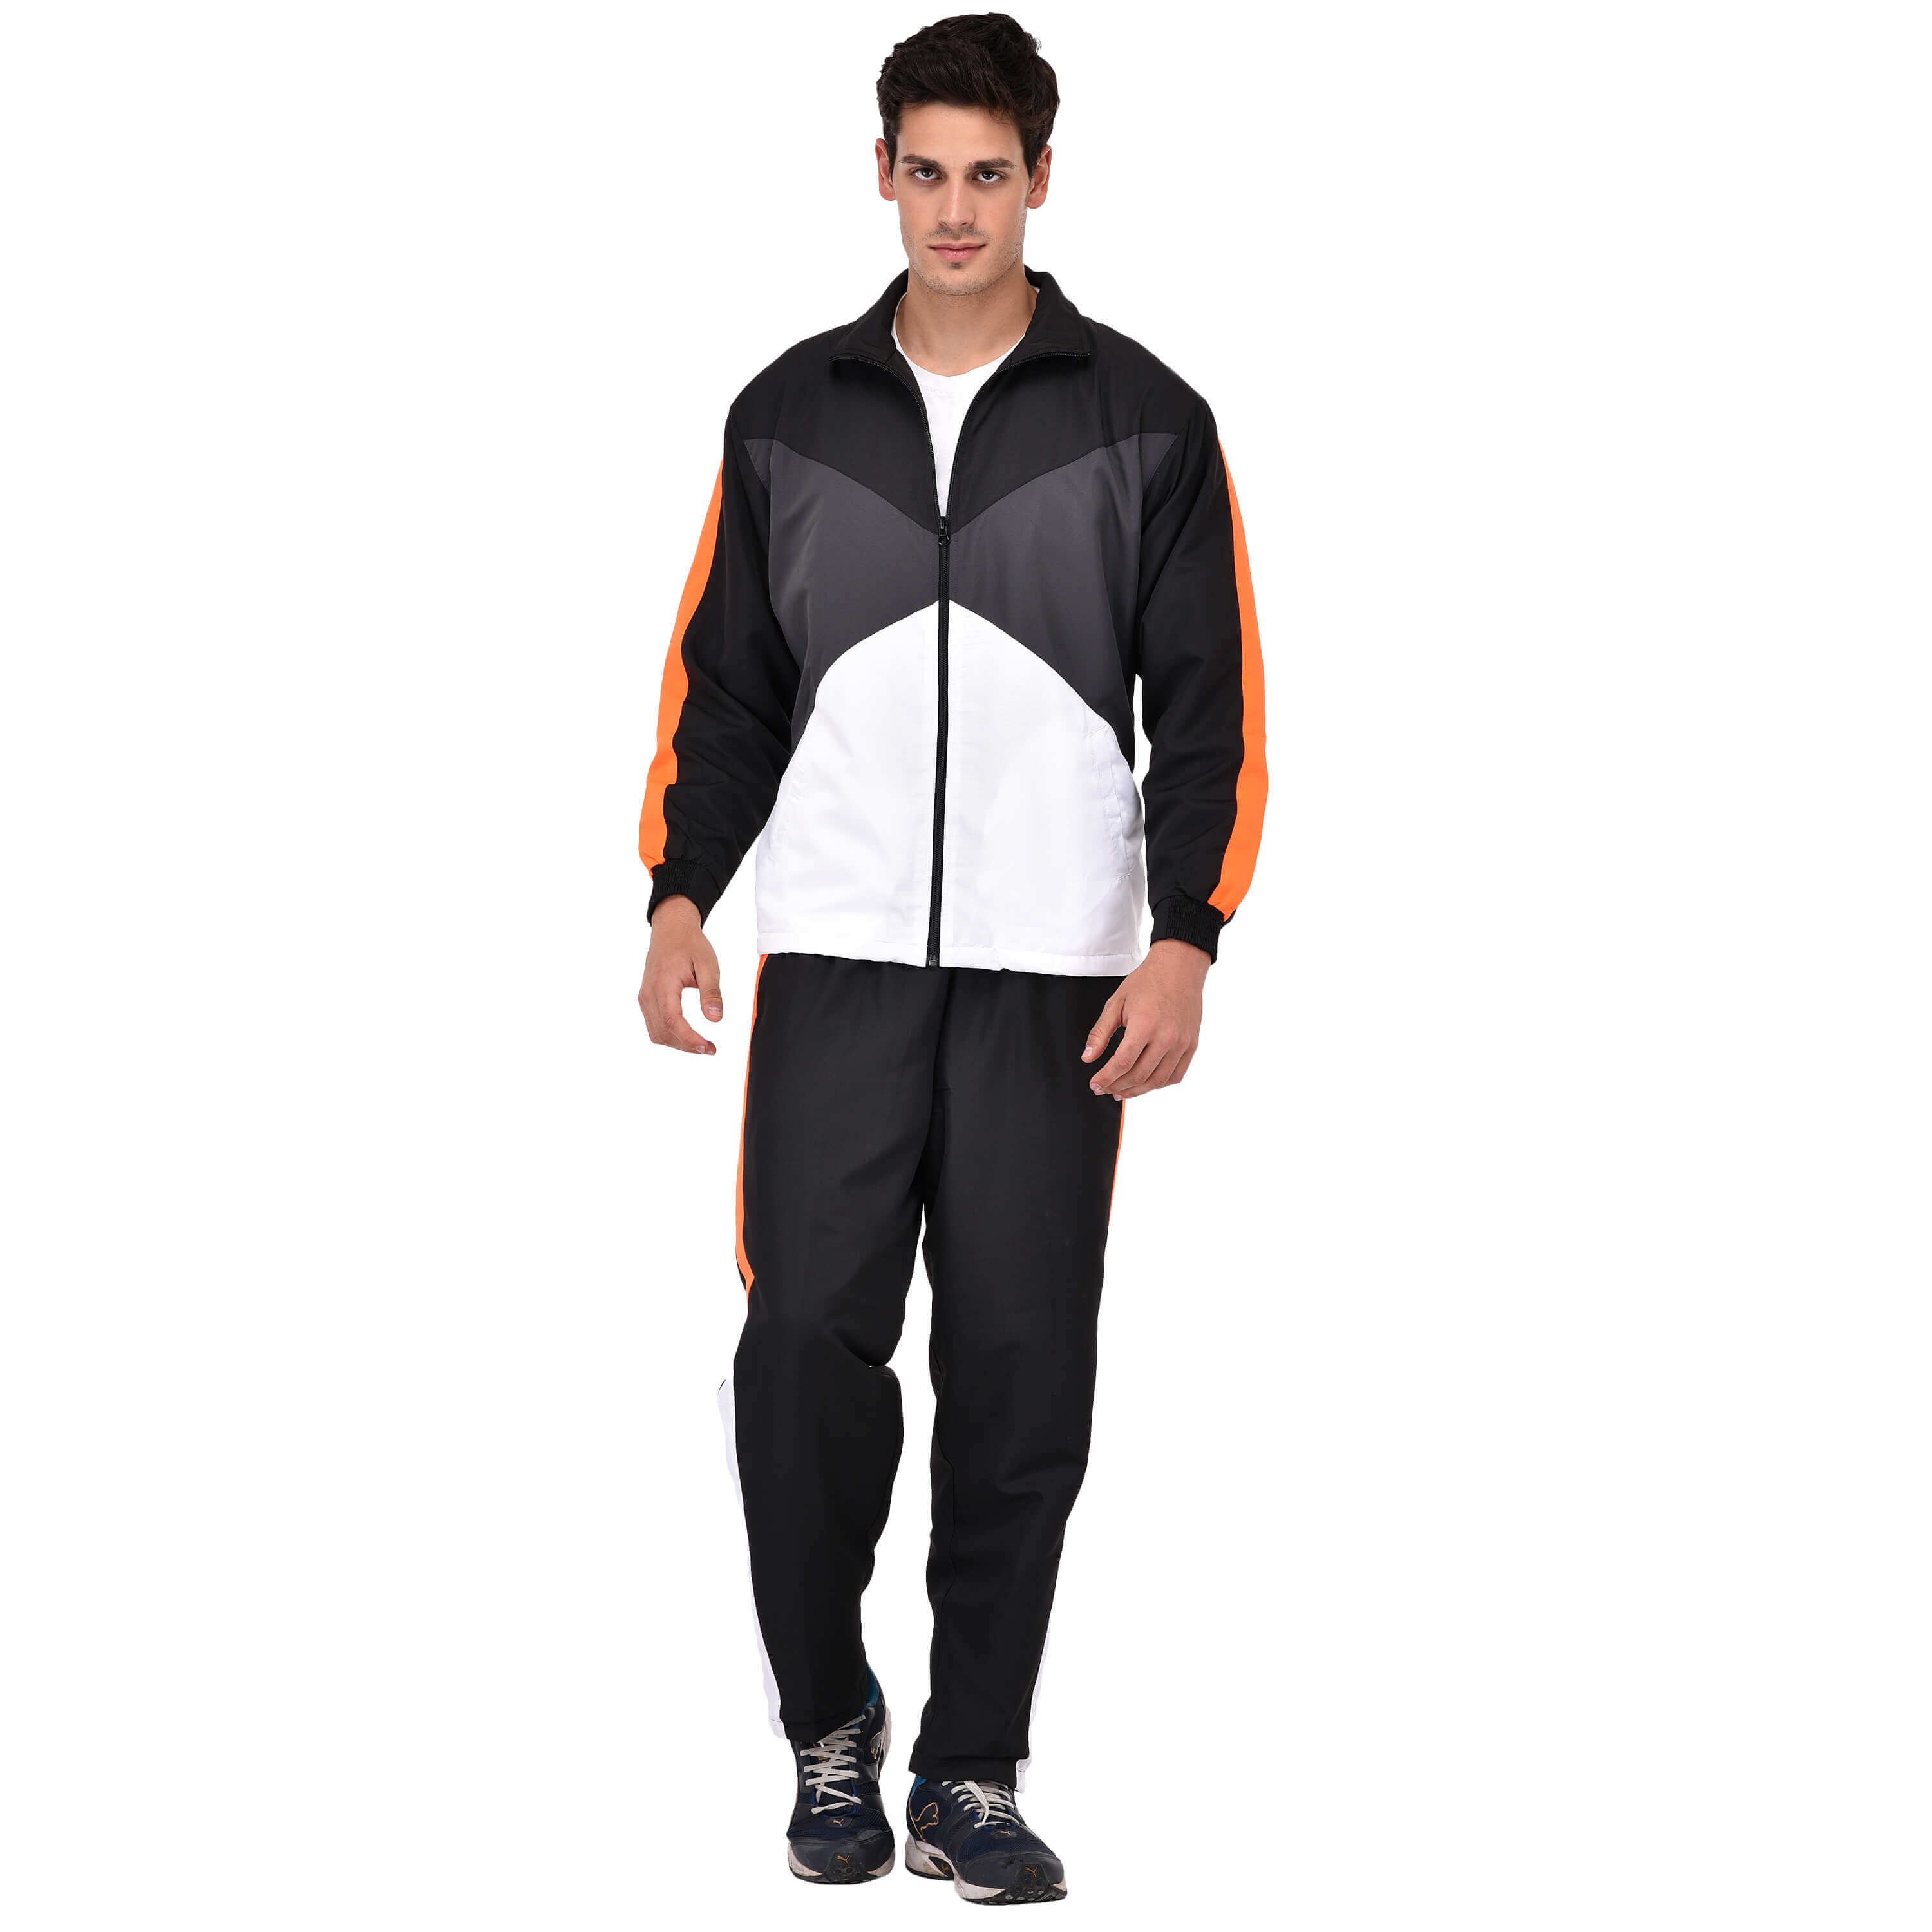 Sports Tracksuit Manufacturers in Solapur